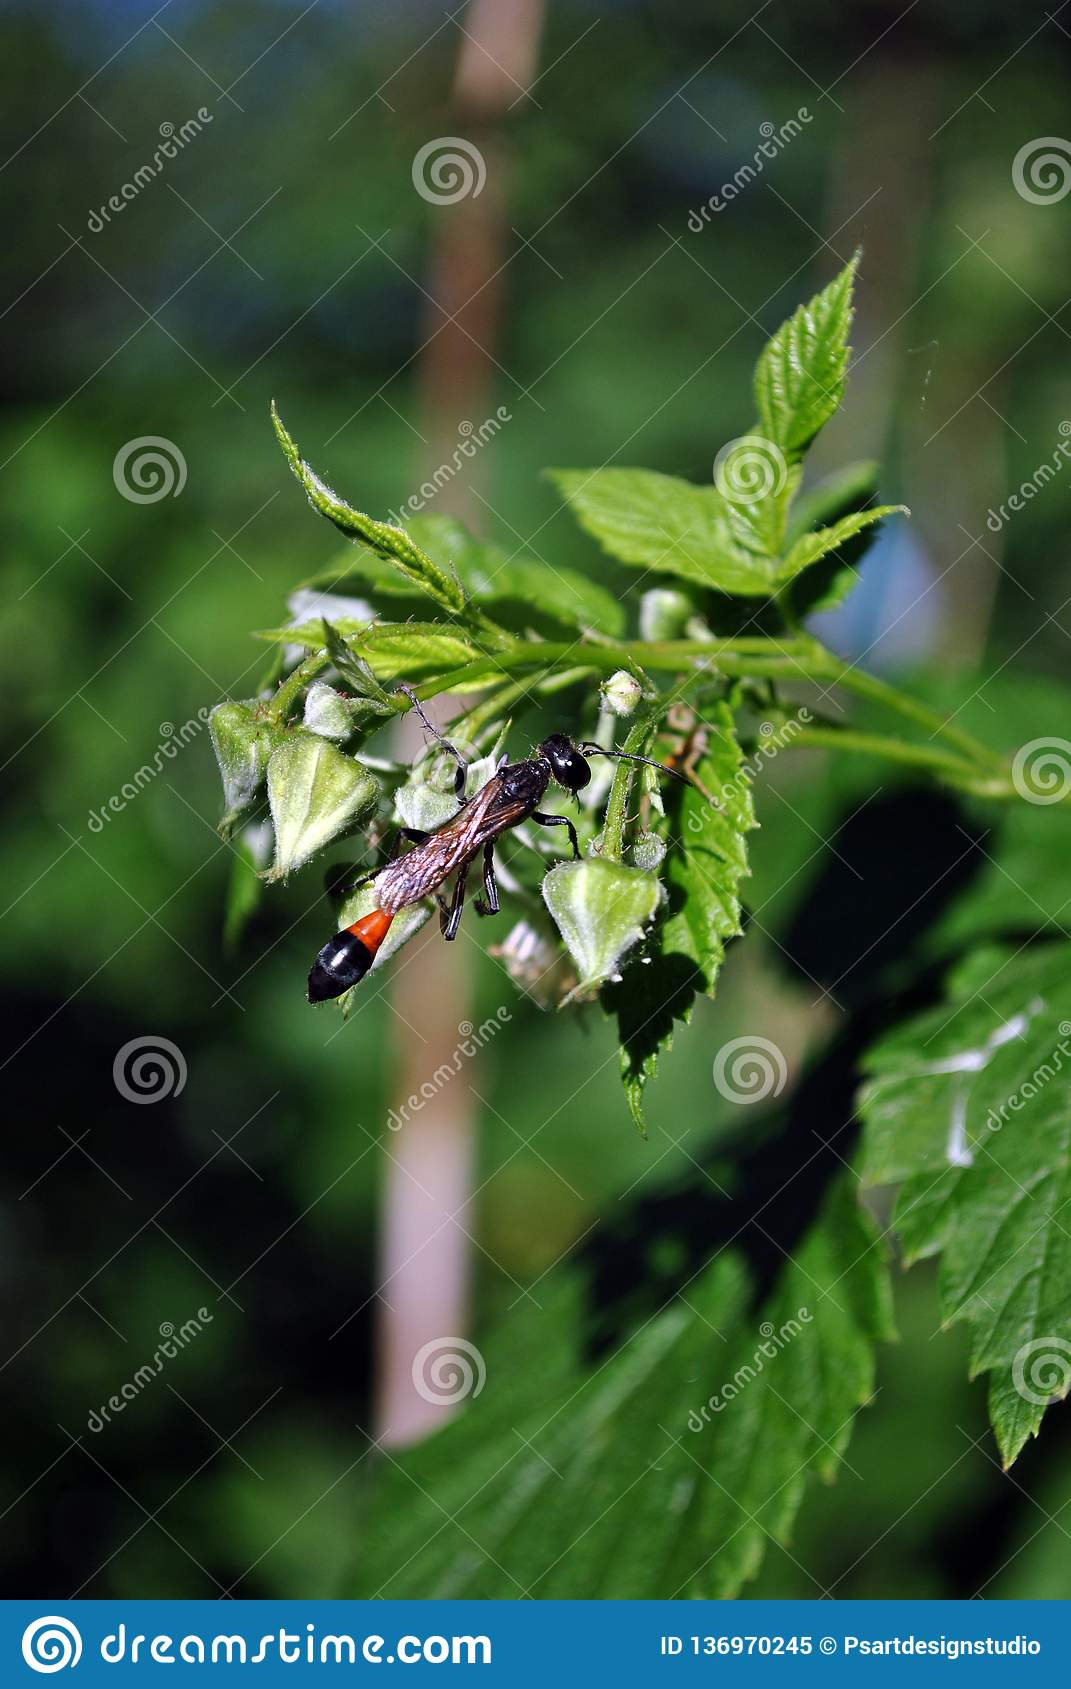 Raspberry flowers buds with wild wasp sitting on it close up detail, green bush soft background